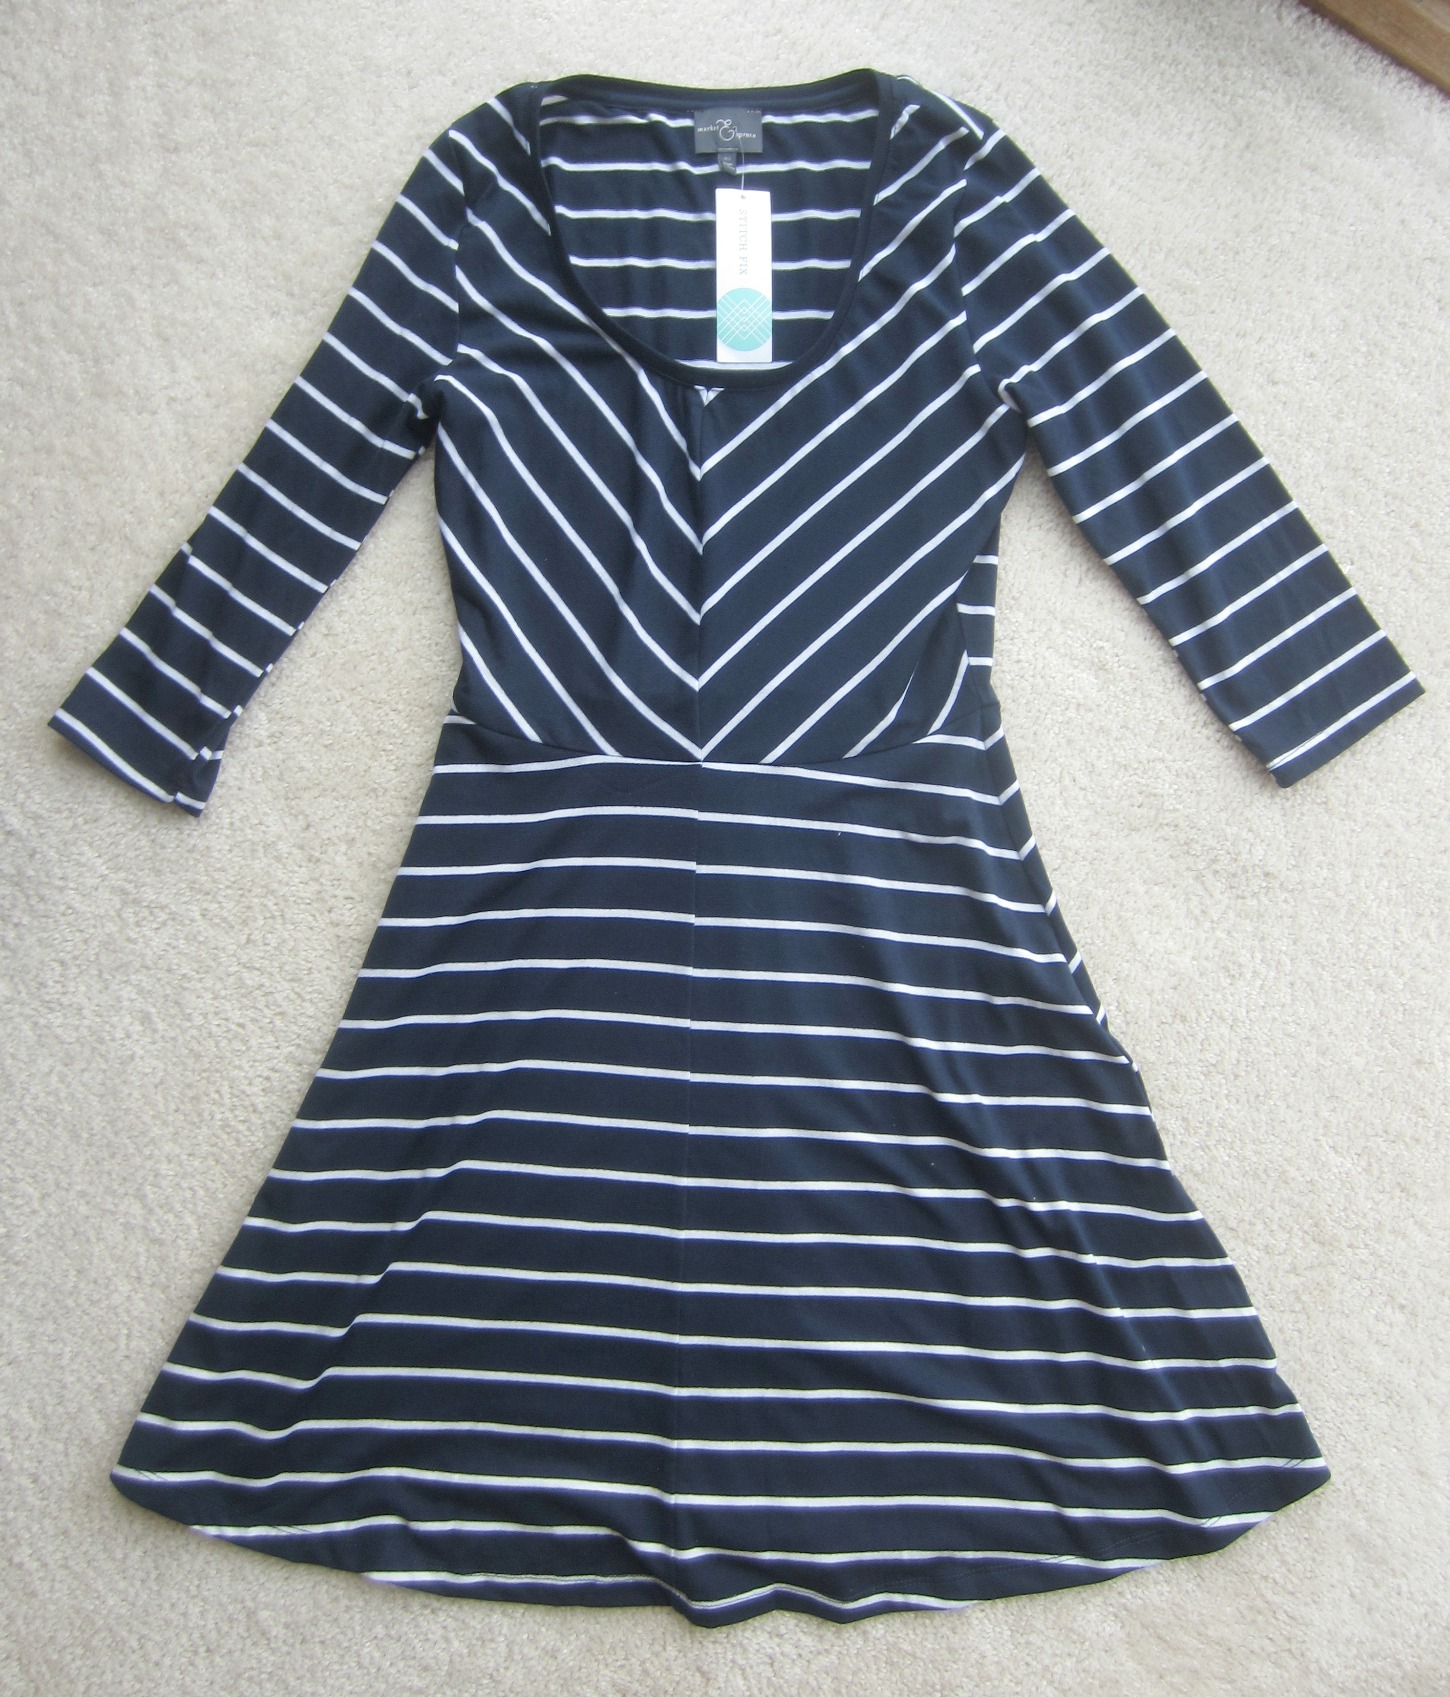 stitch fix striped 3/4 market & spruce dress